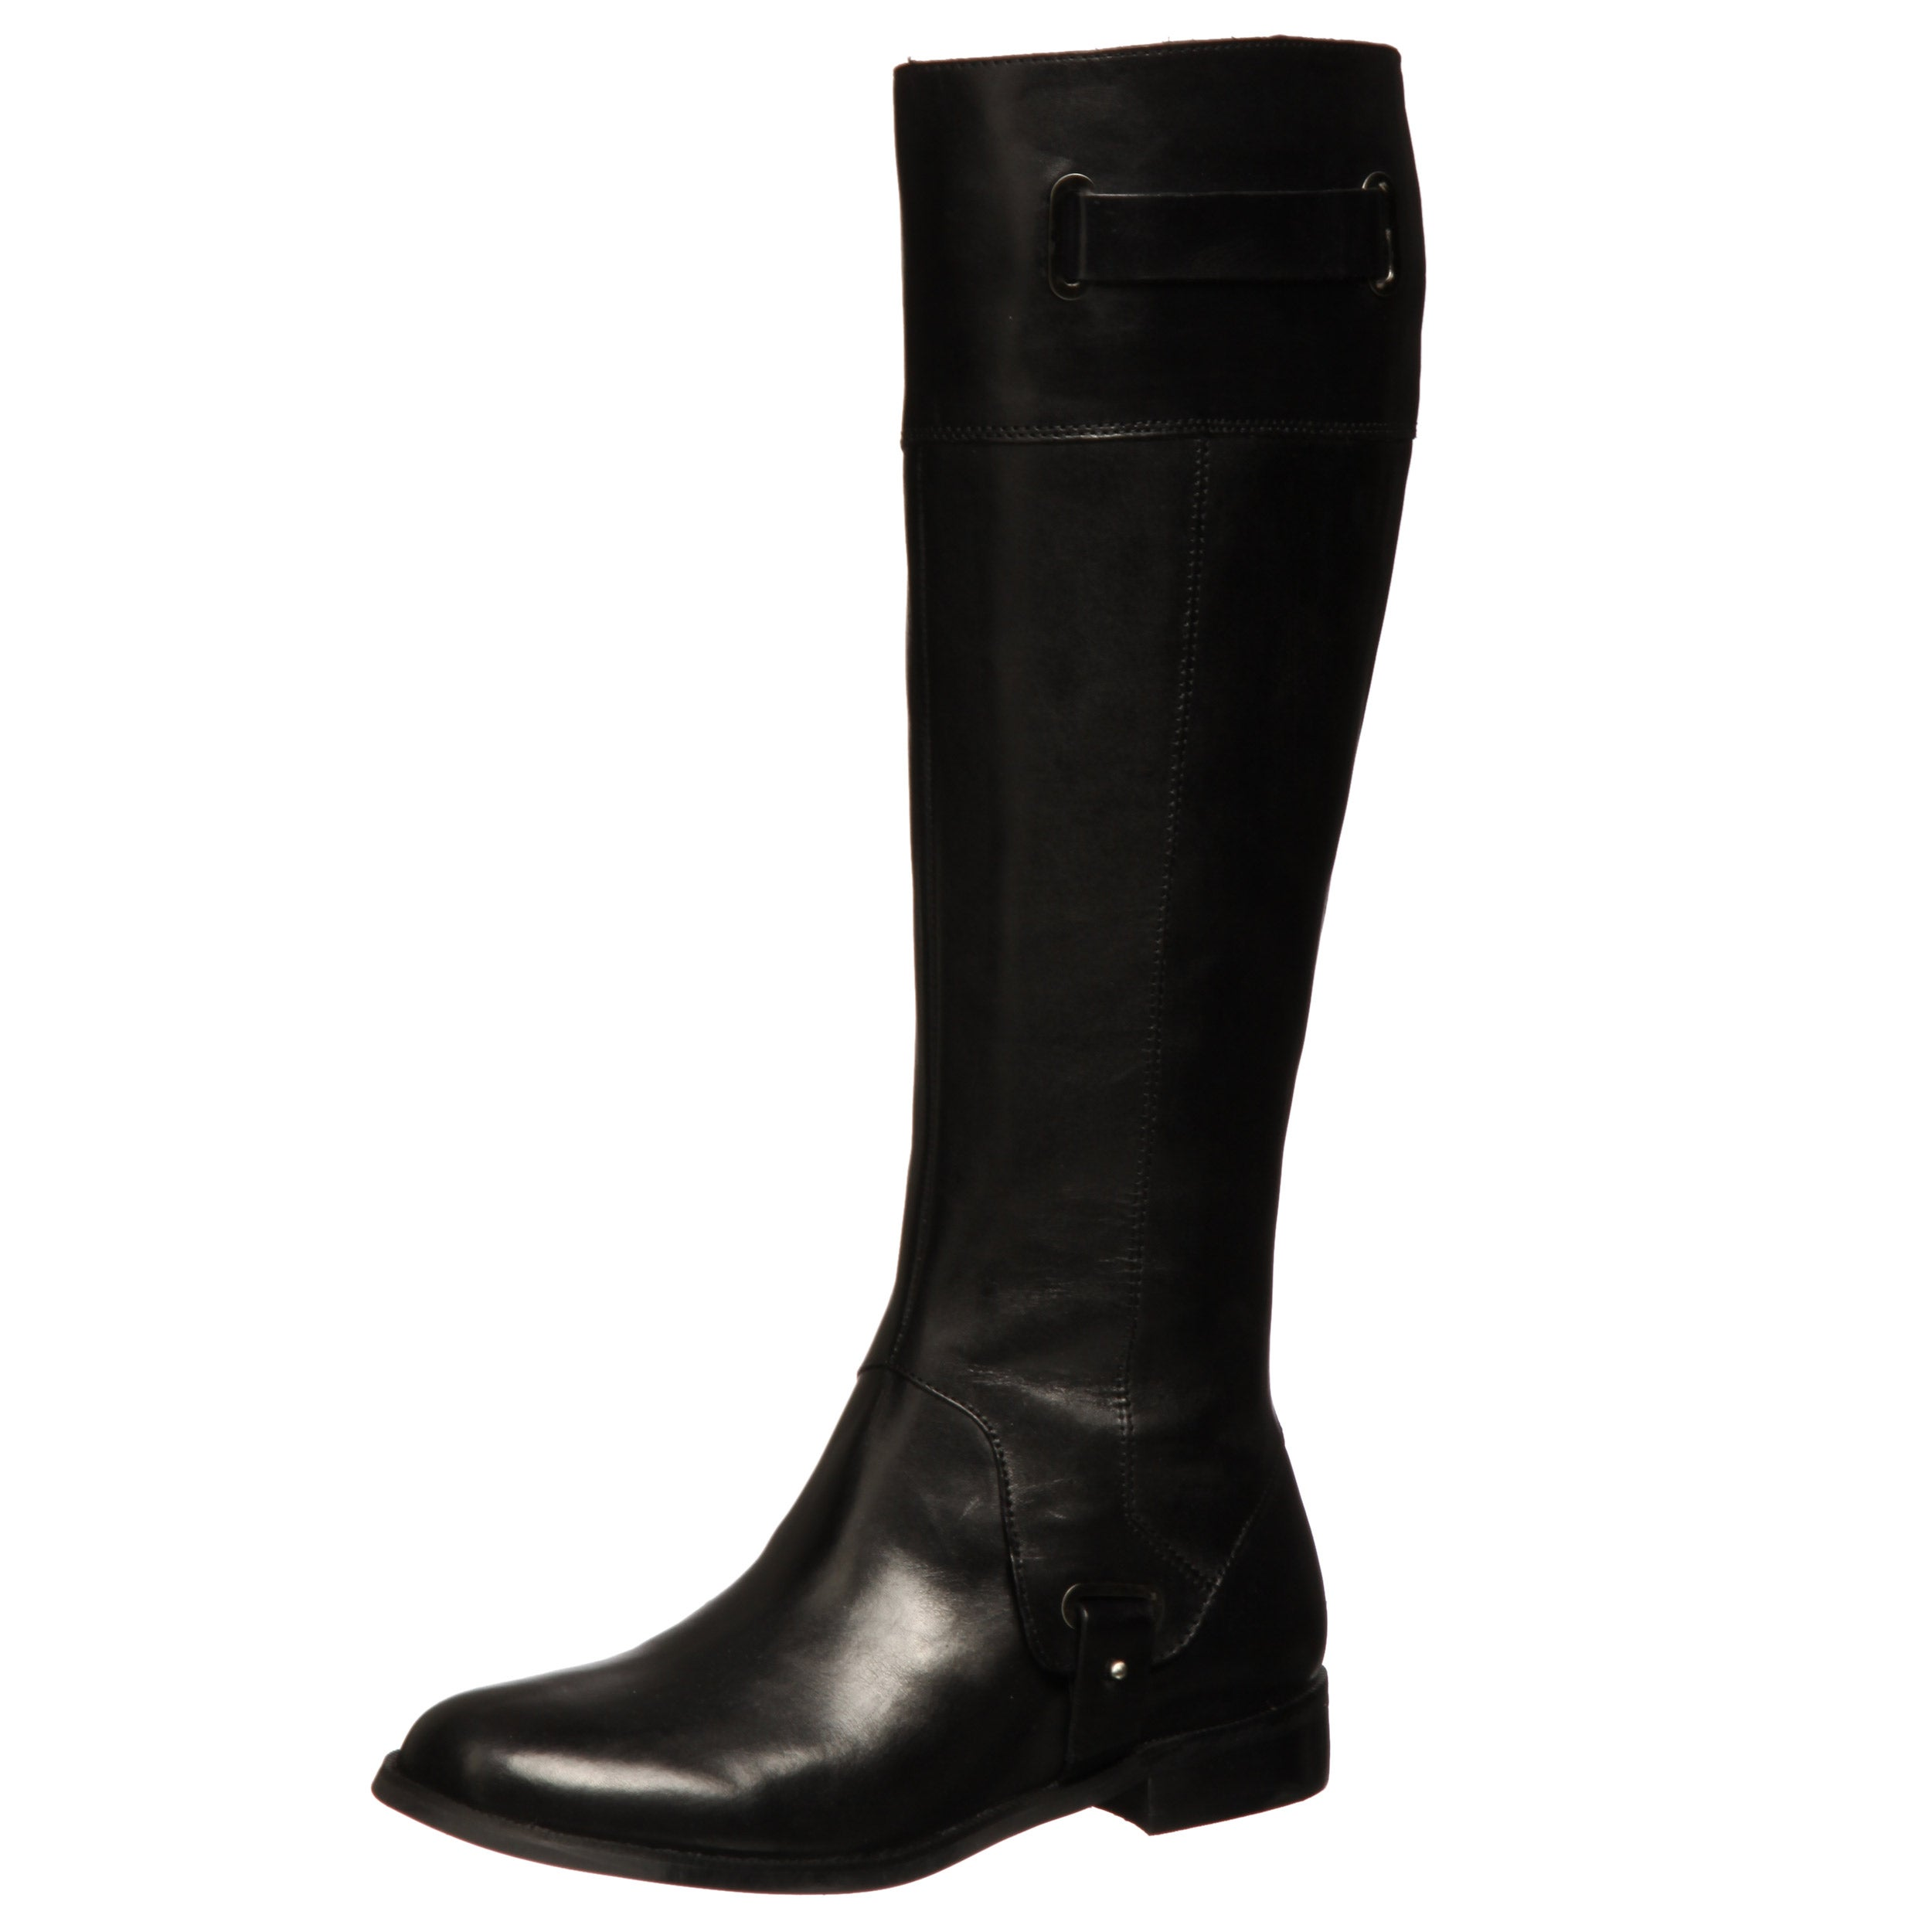 1b34ee09a8252 Shop Etienne Aigner Women s  Gilbert  Riding Boot - Free Shipping ...